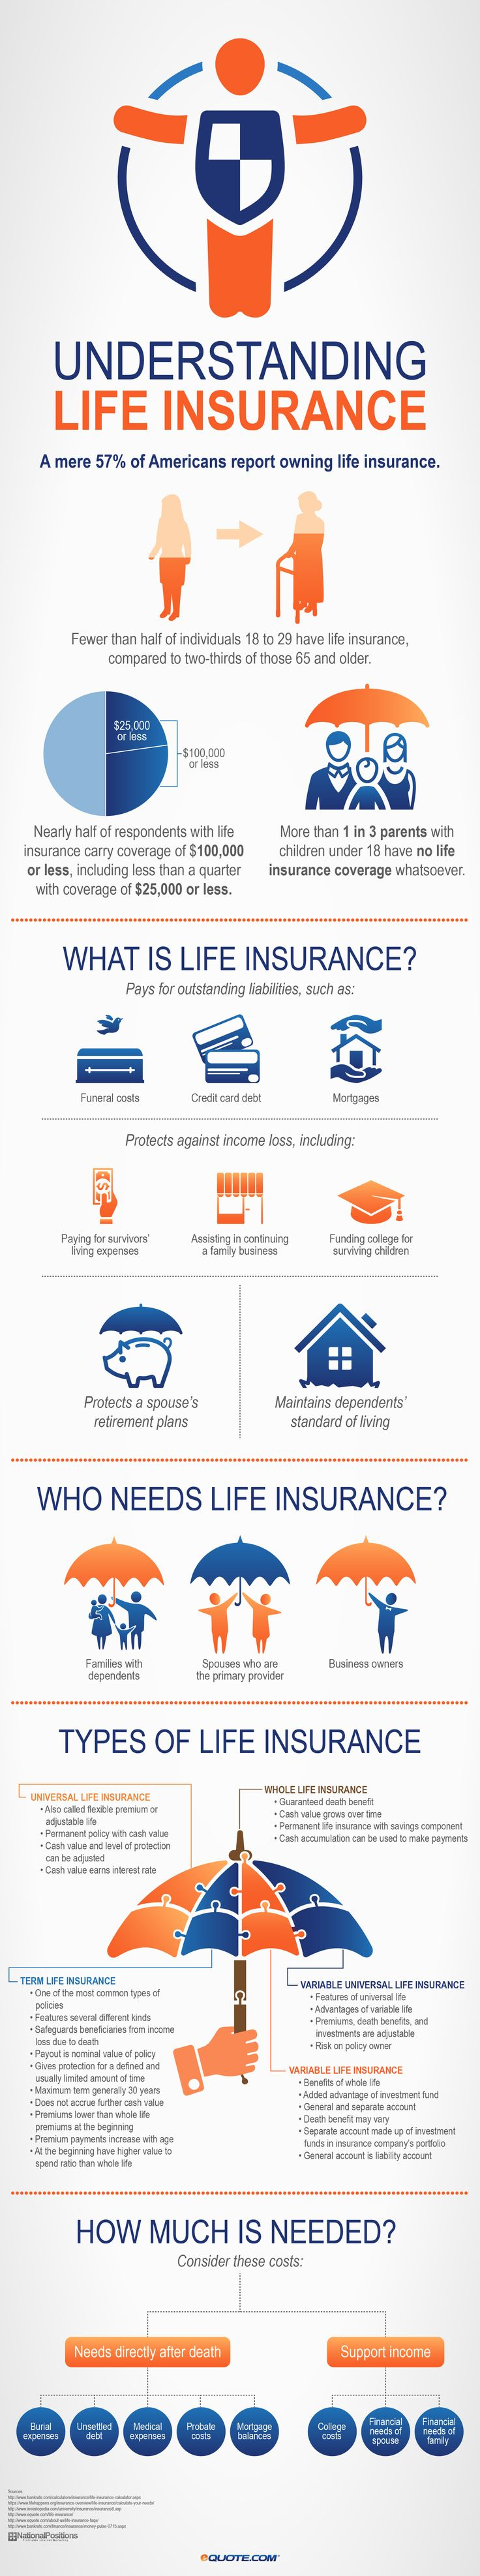 Life Insurance Quotes For Parents Classy Best 25 Life Insurance Ideas On Pinterest  Life Insurance